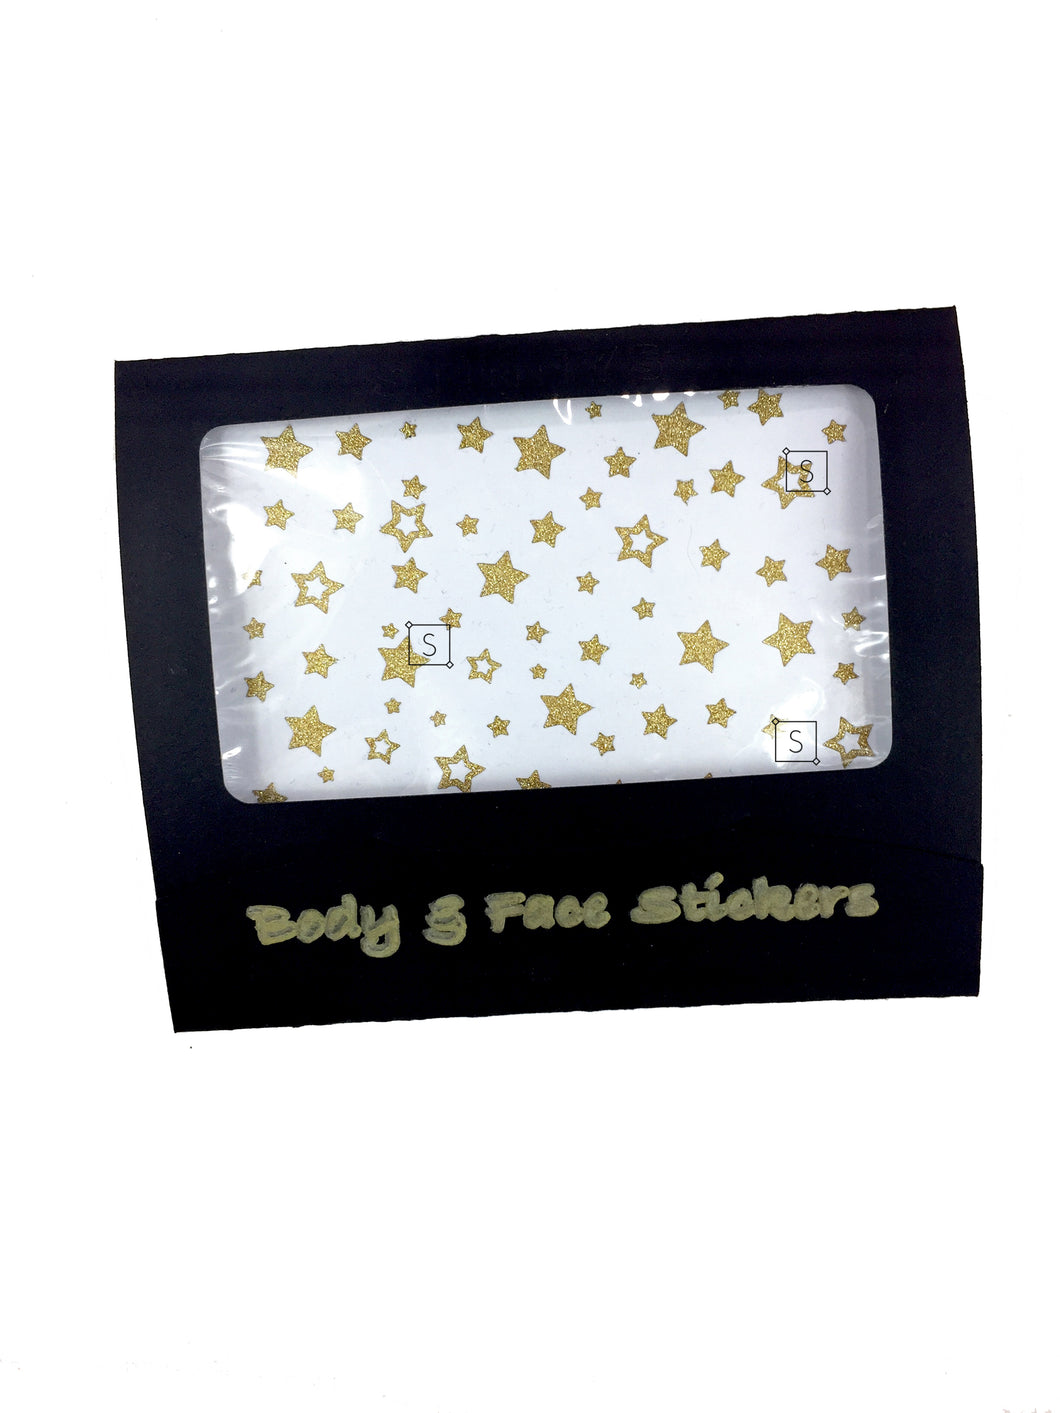 Fallen Stars Body & Face Stickers.